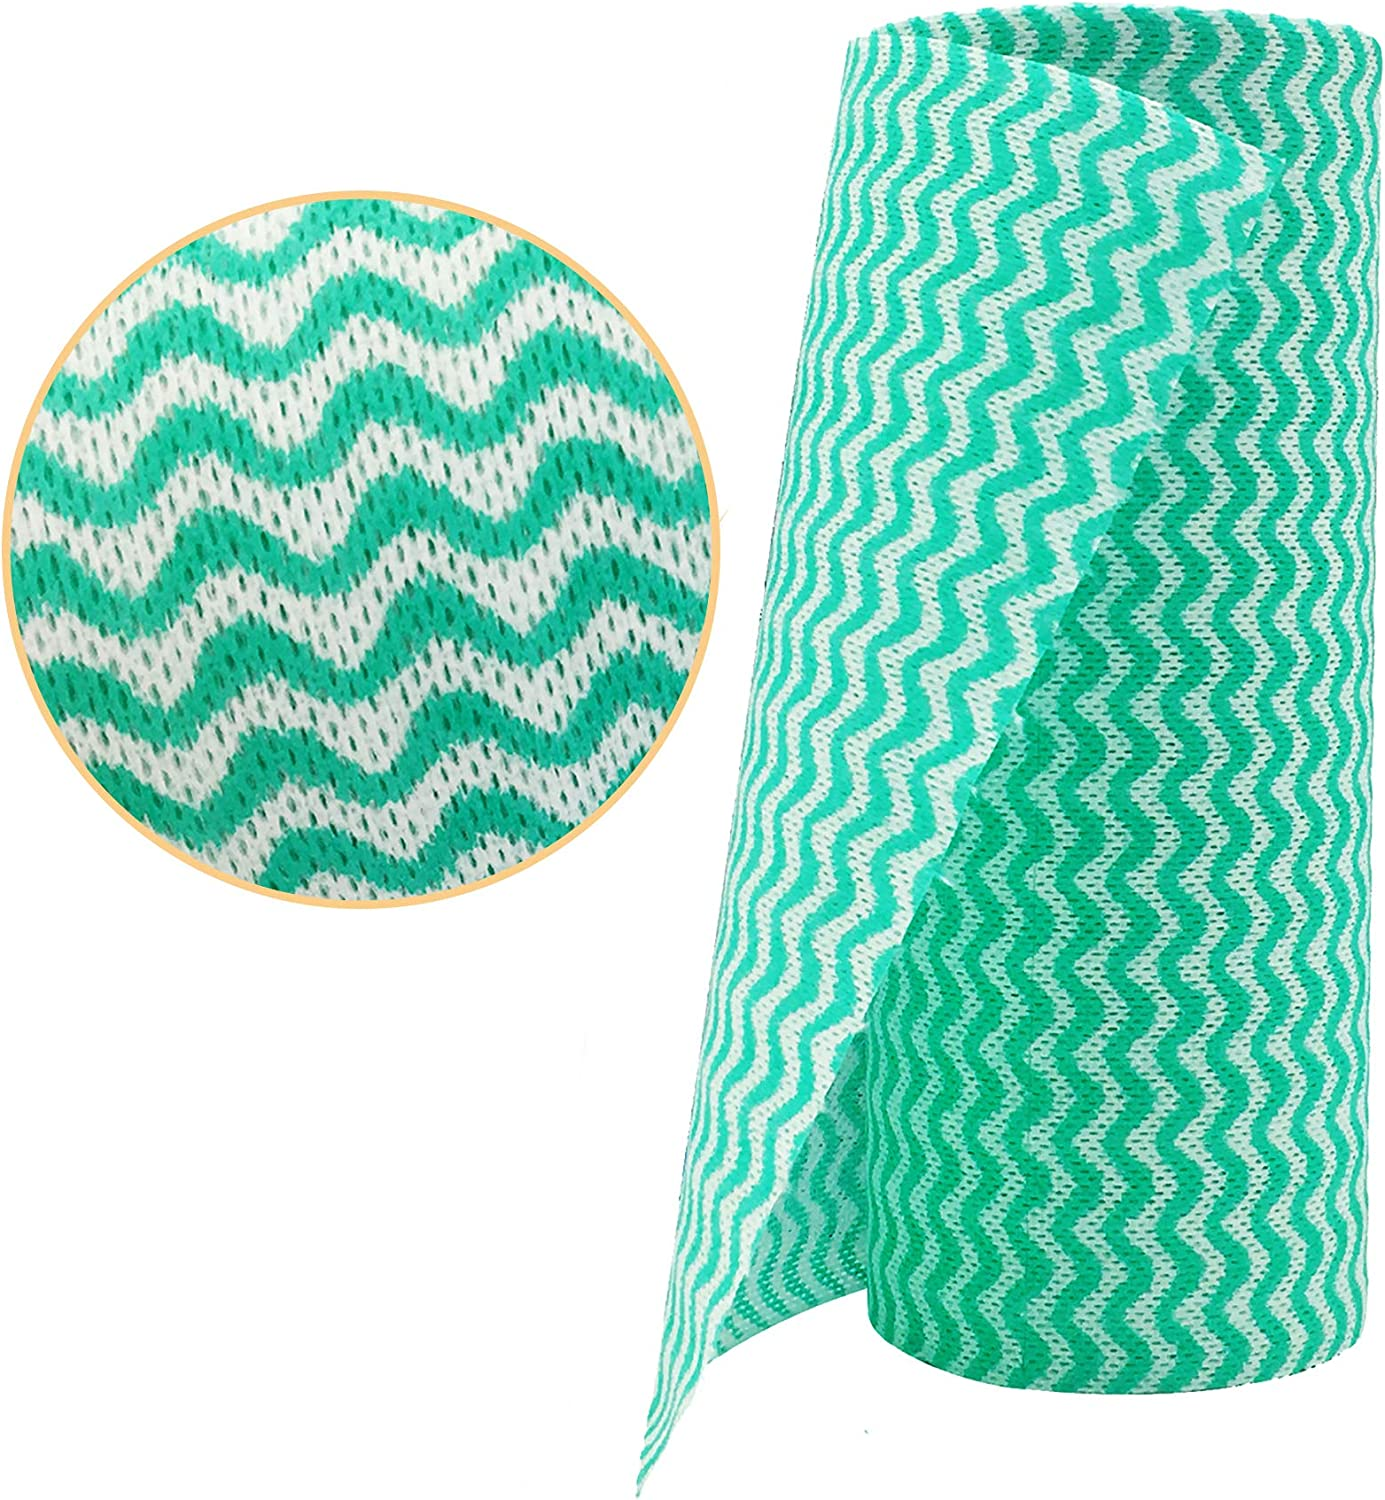 MsFun Reusable Paper Jacksonville Mall Towels for Kitchen – 1 Ct 55% OFF 60 Roll